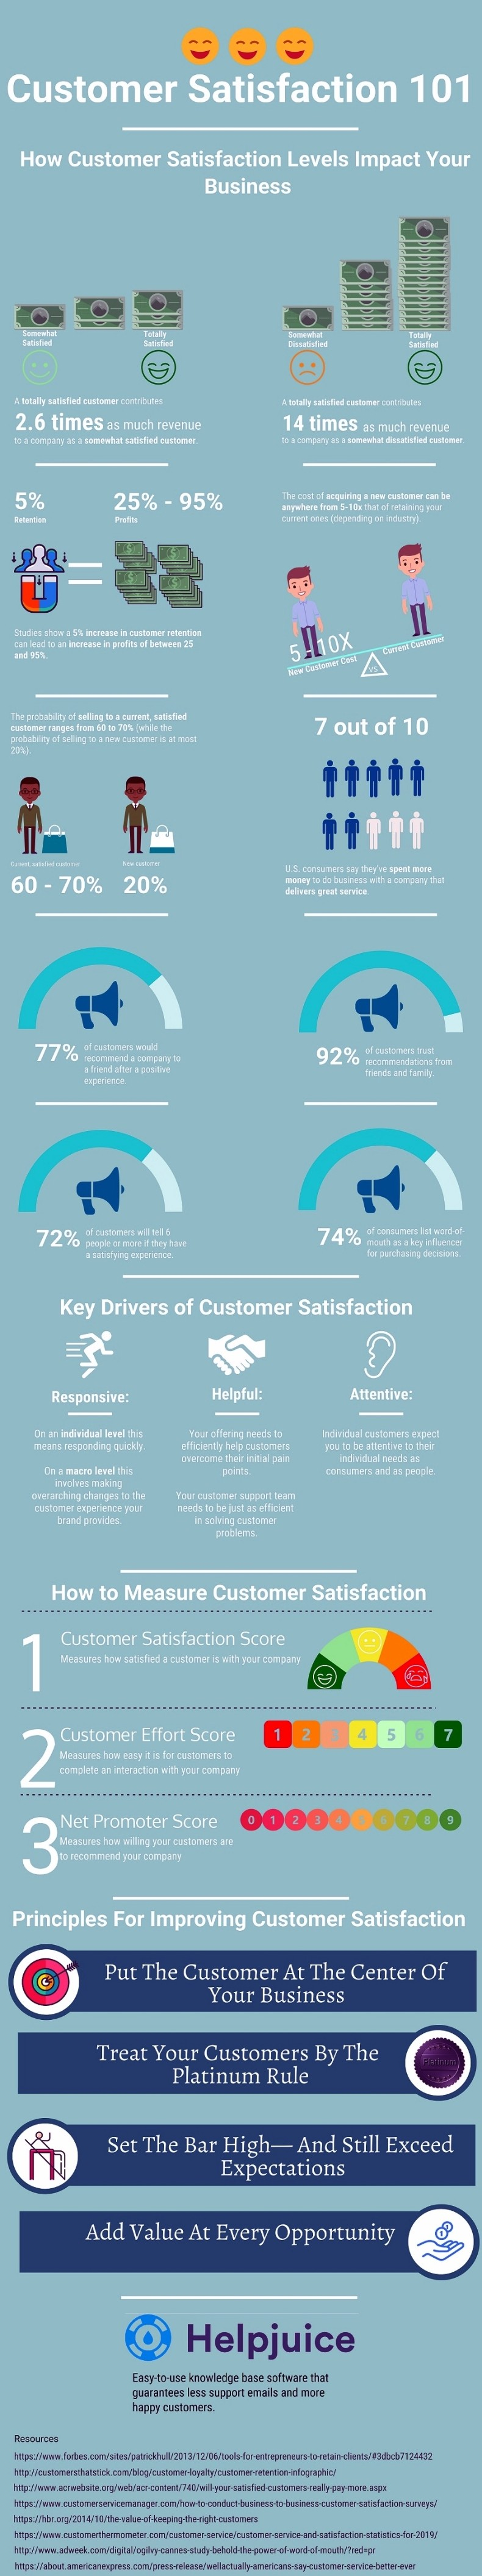 Customer Satisfaction Guide